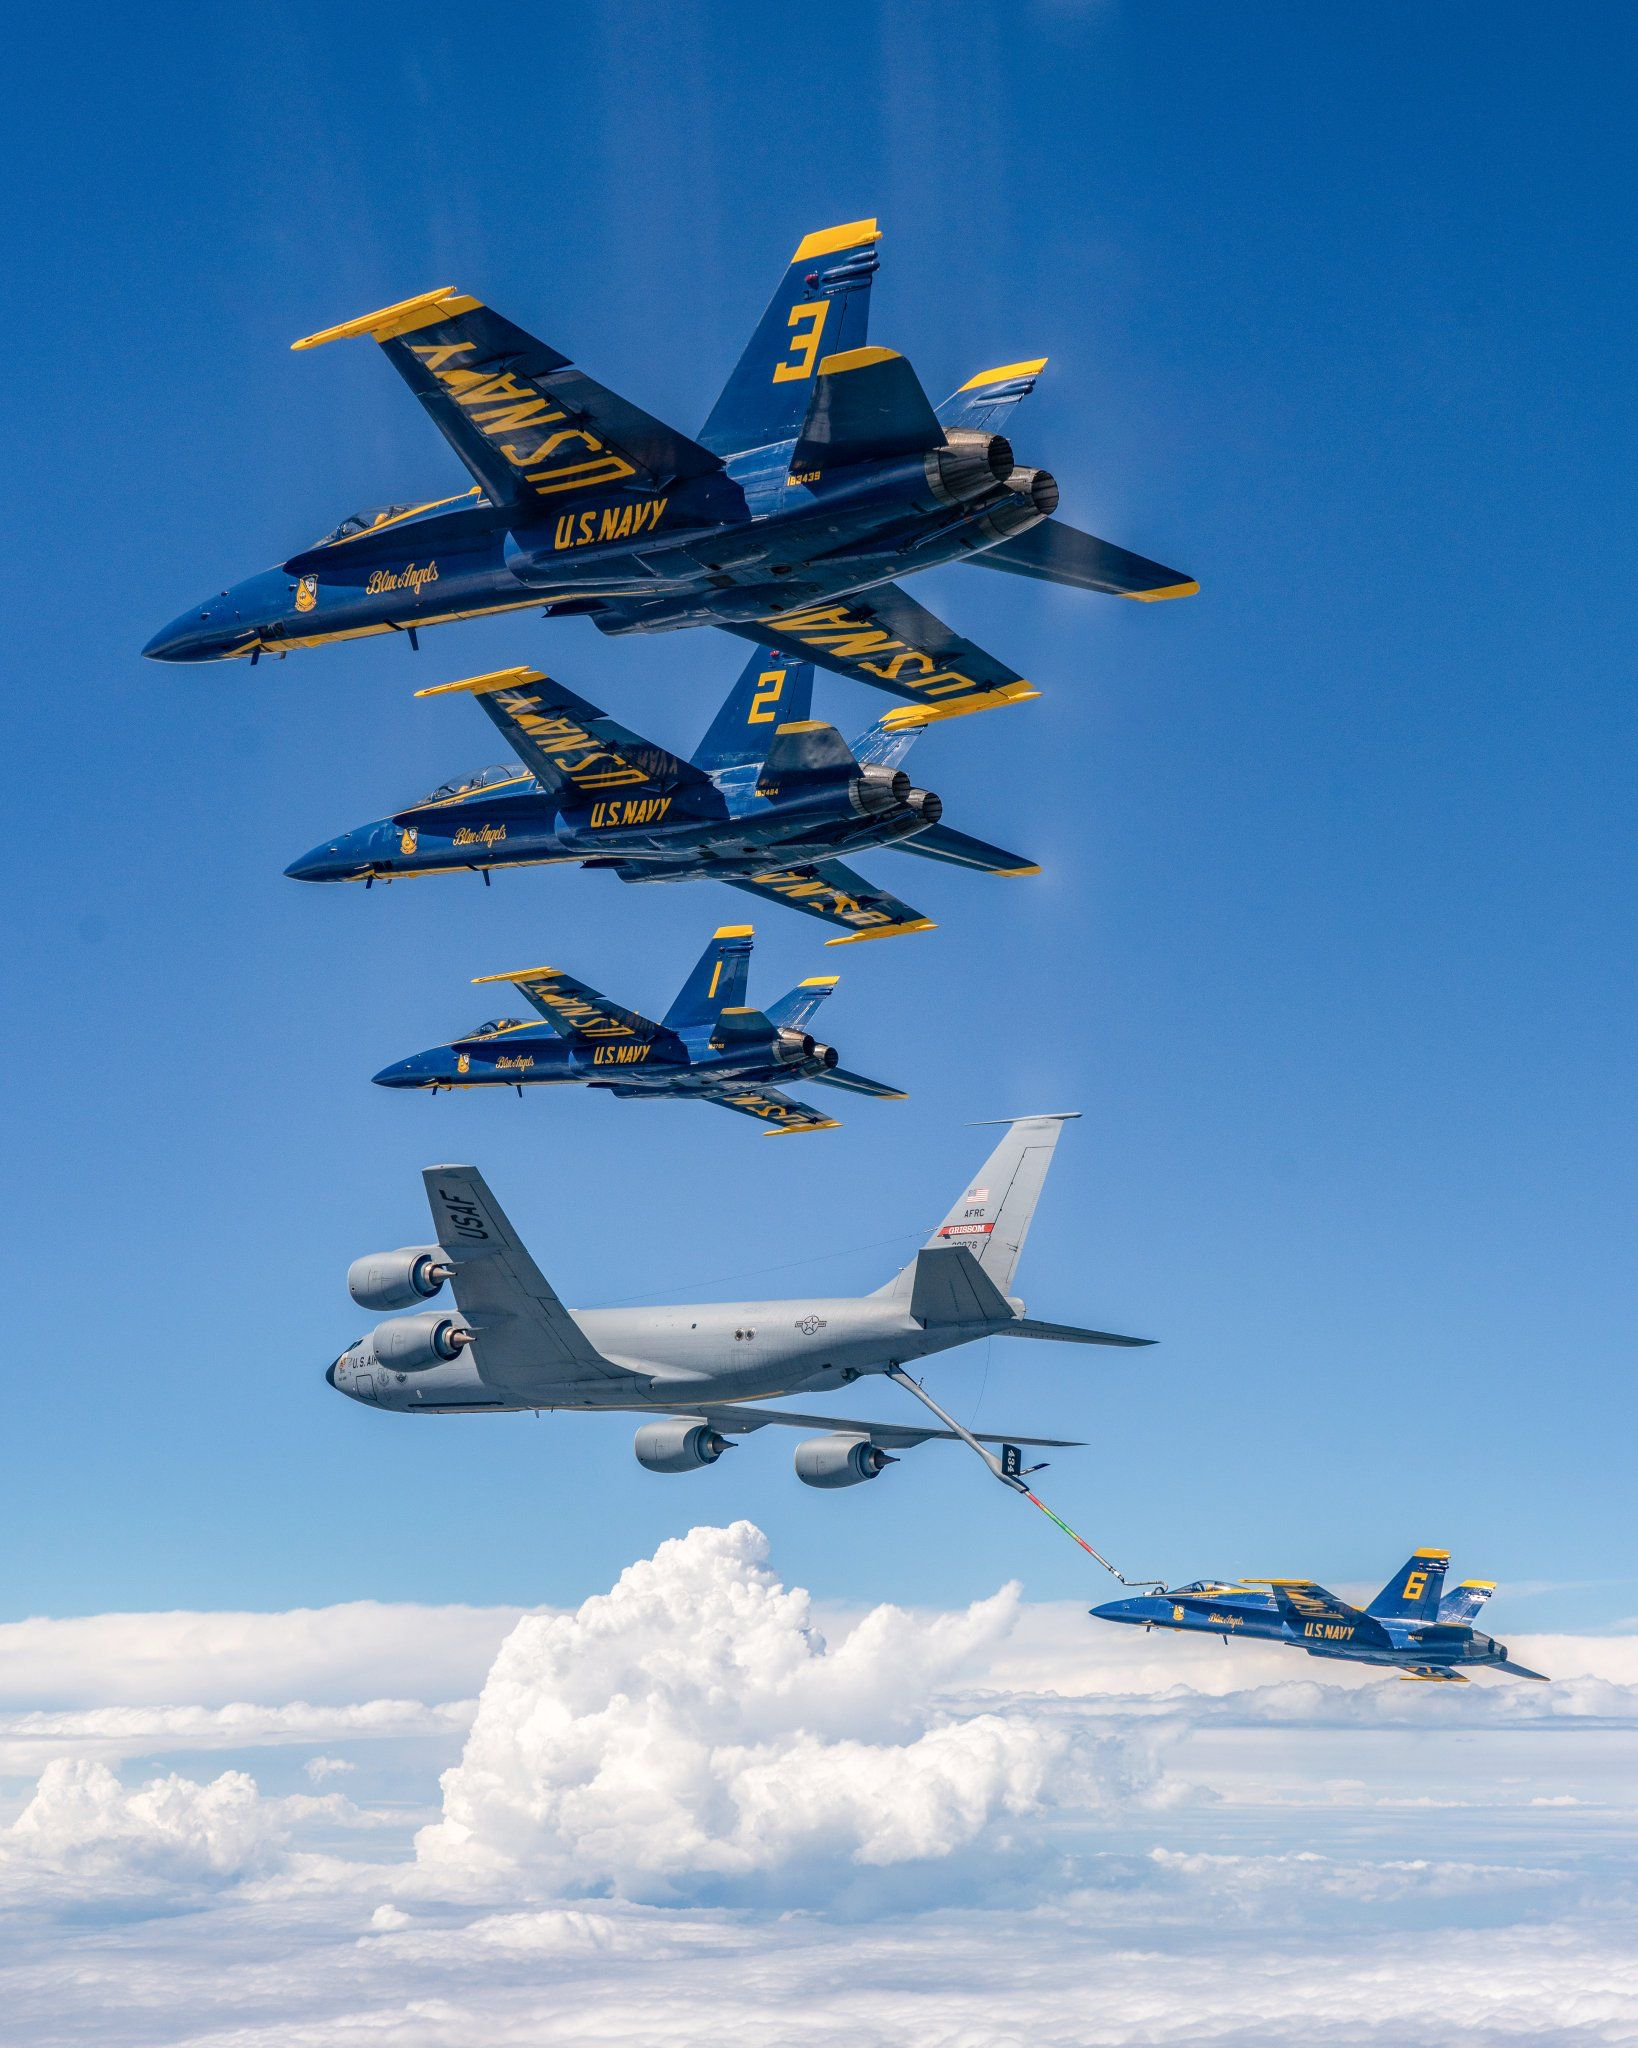 Image by Don on Thunderbirds & Blue Angels Us